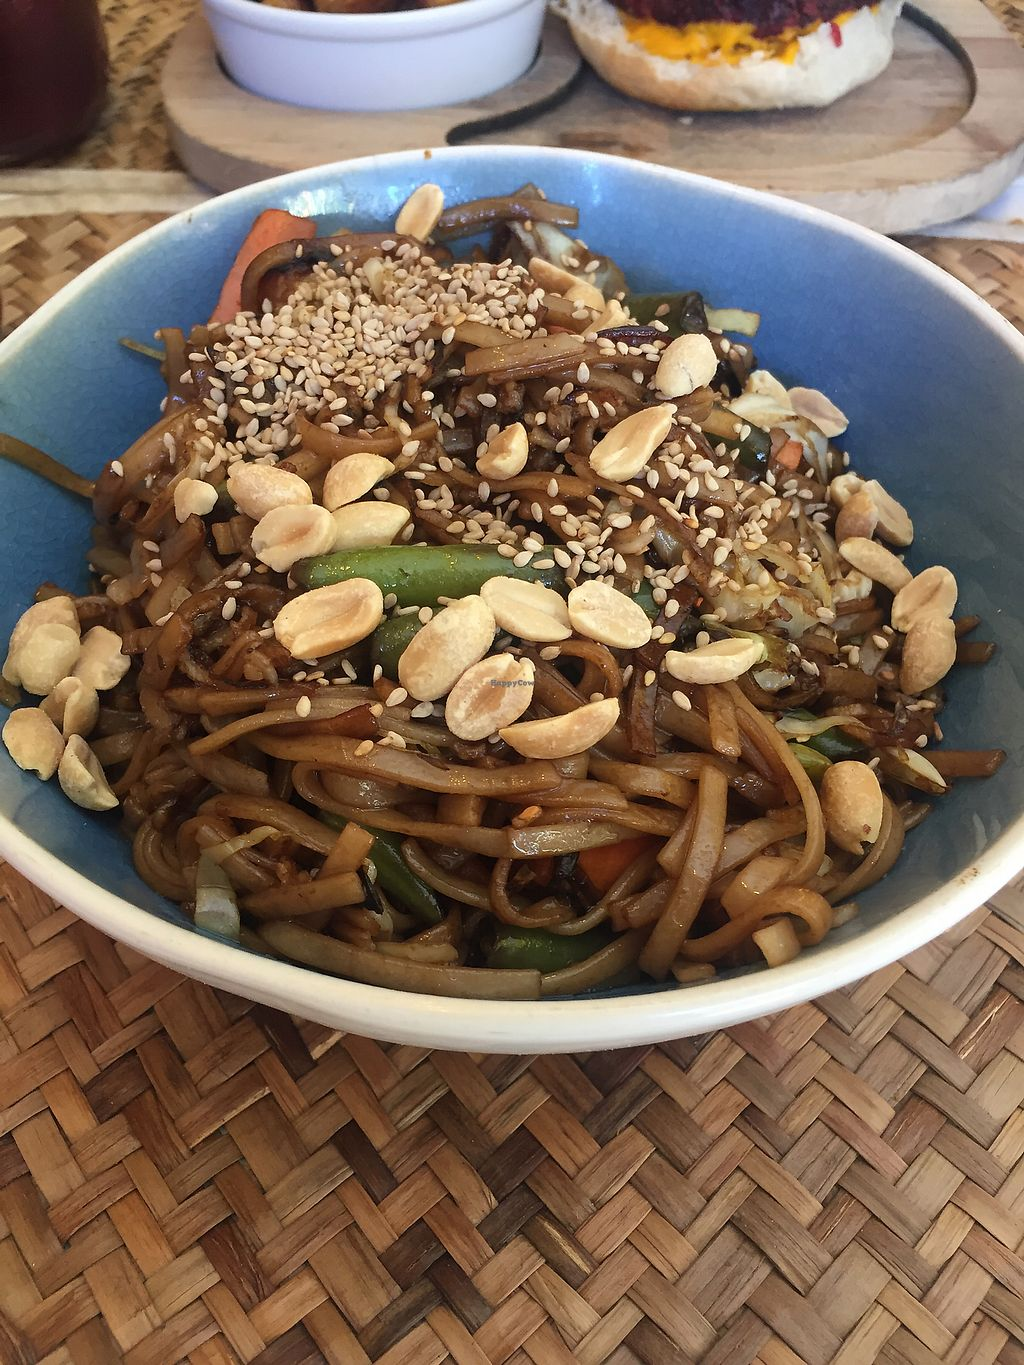 """Photo of Amorcito  by <a href=""""/members/profile/VegannGiuli"""">VegannGiuli</a> <br/>Wok de fideos y verduras vegano <br/> January 6, 2018  - <a href='/contact/abuse/image/89924/343637'>Report</a>"""